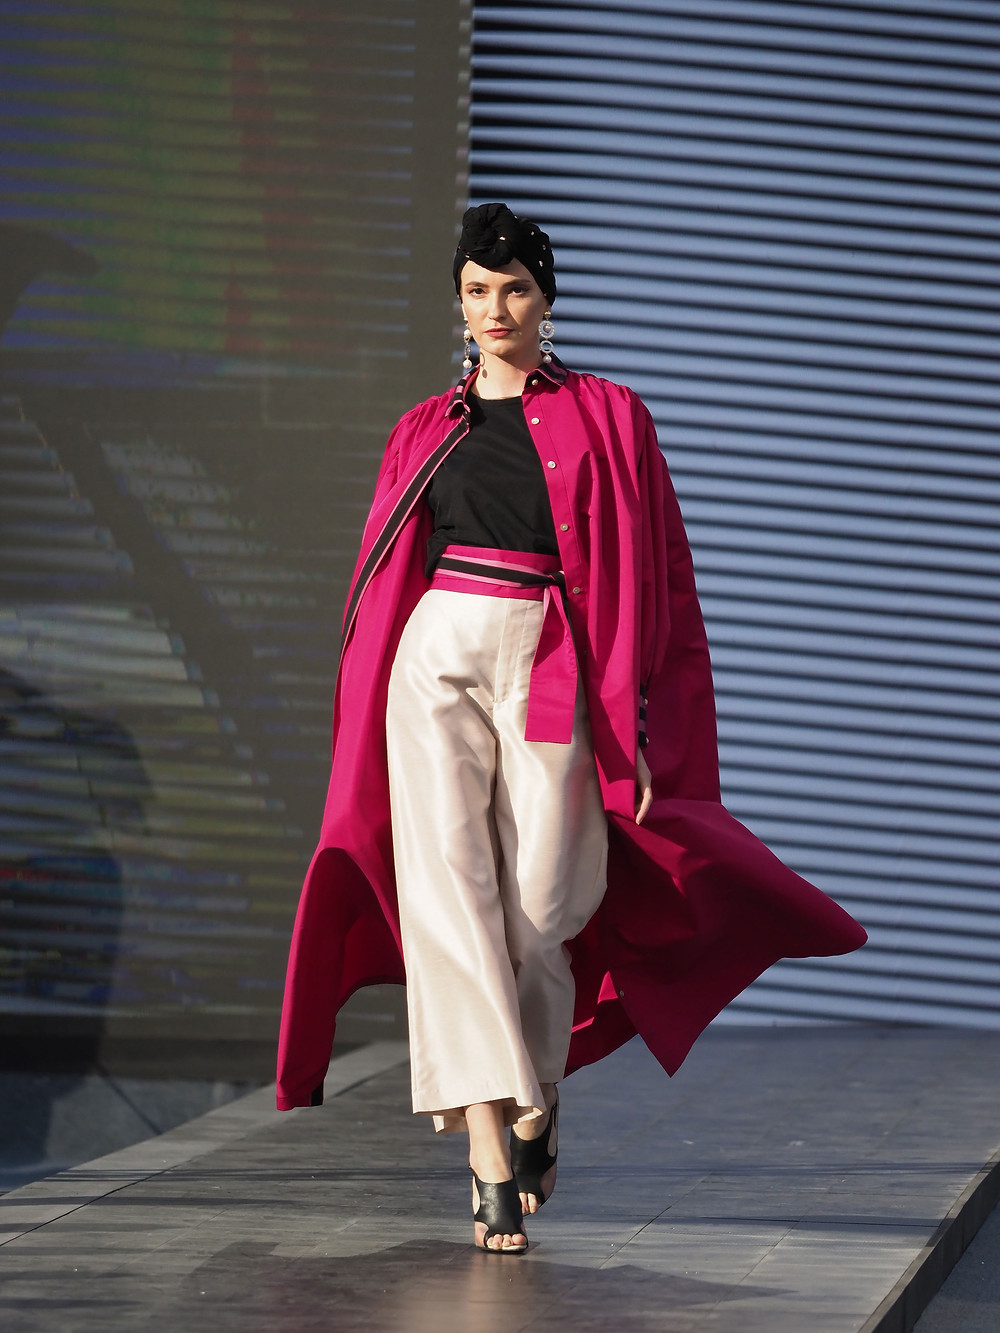 Modest Fashion Week is ready to shine from The Heart of Southeast Asia: Jakarta